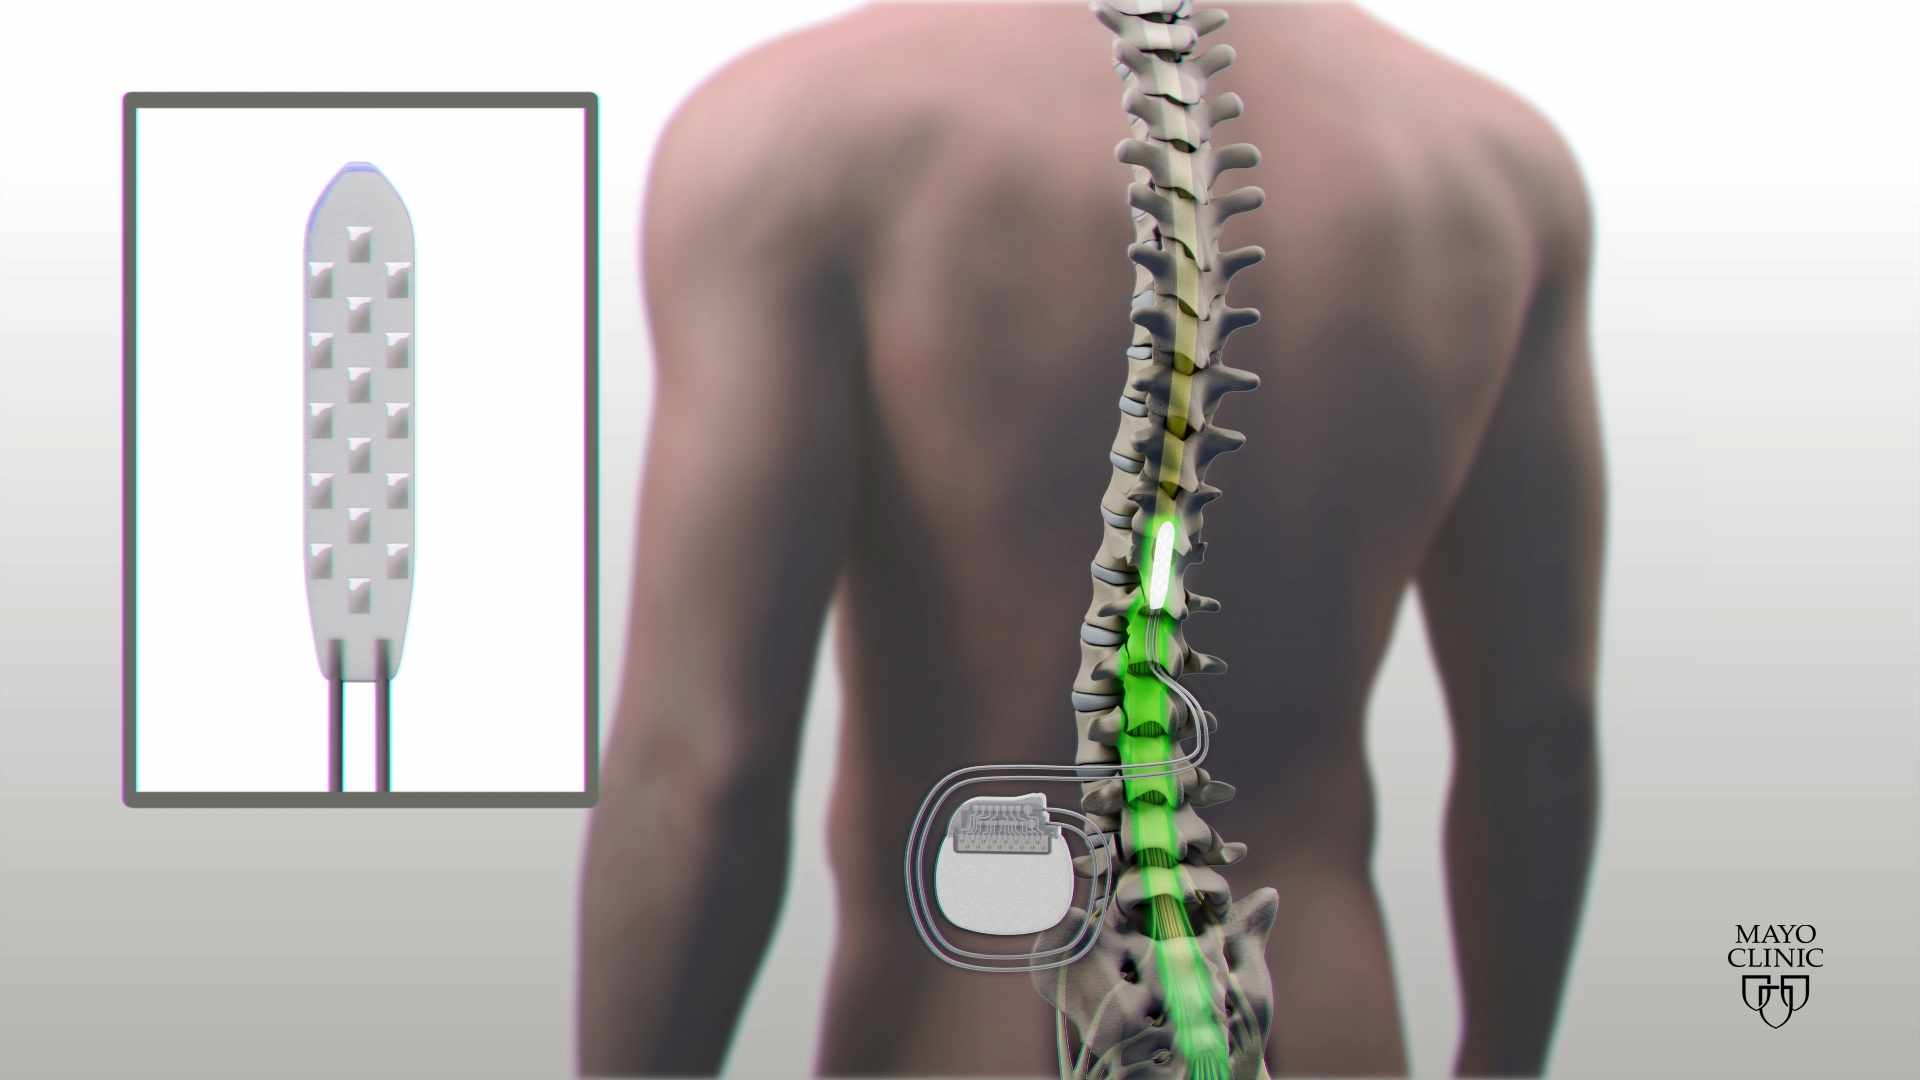 Graphic of spine surgery procedure